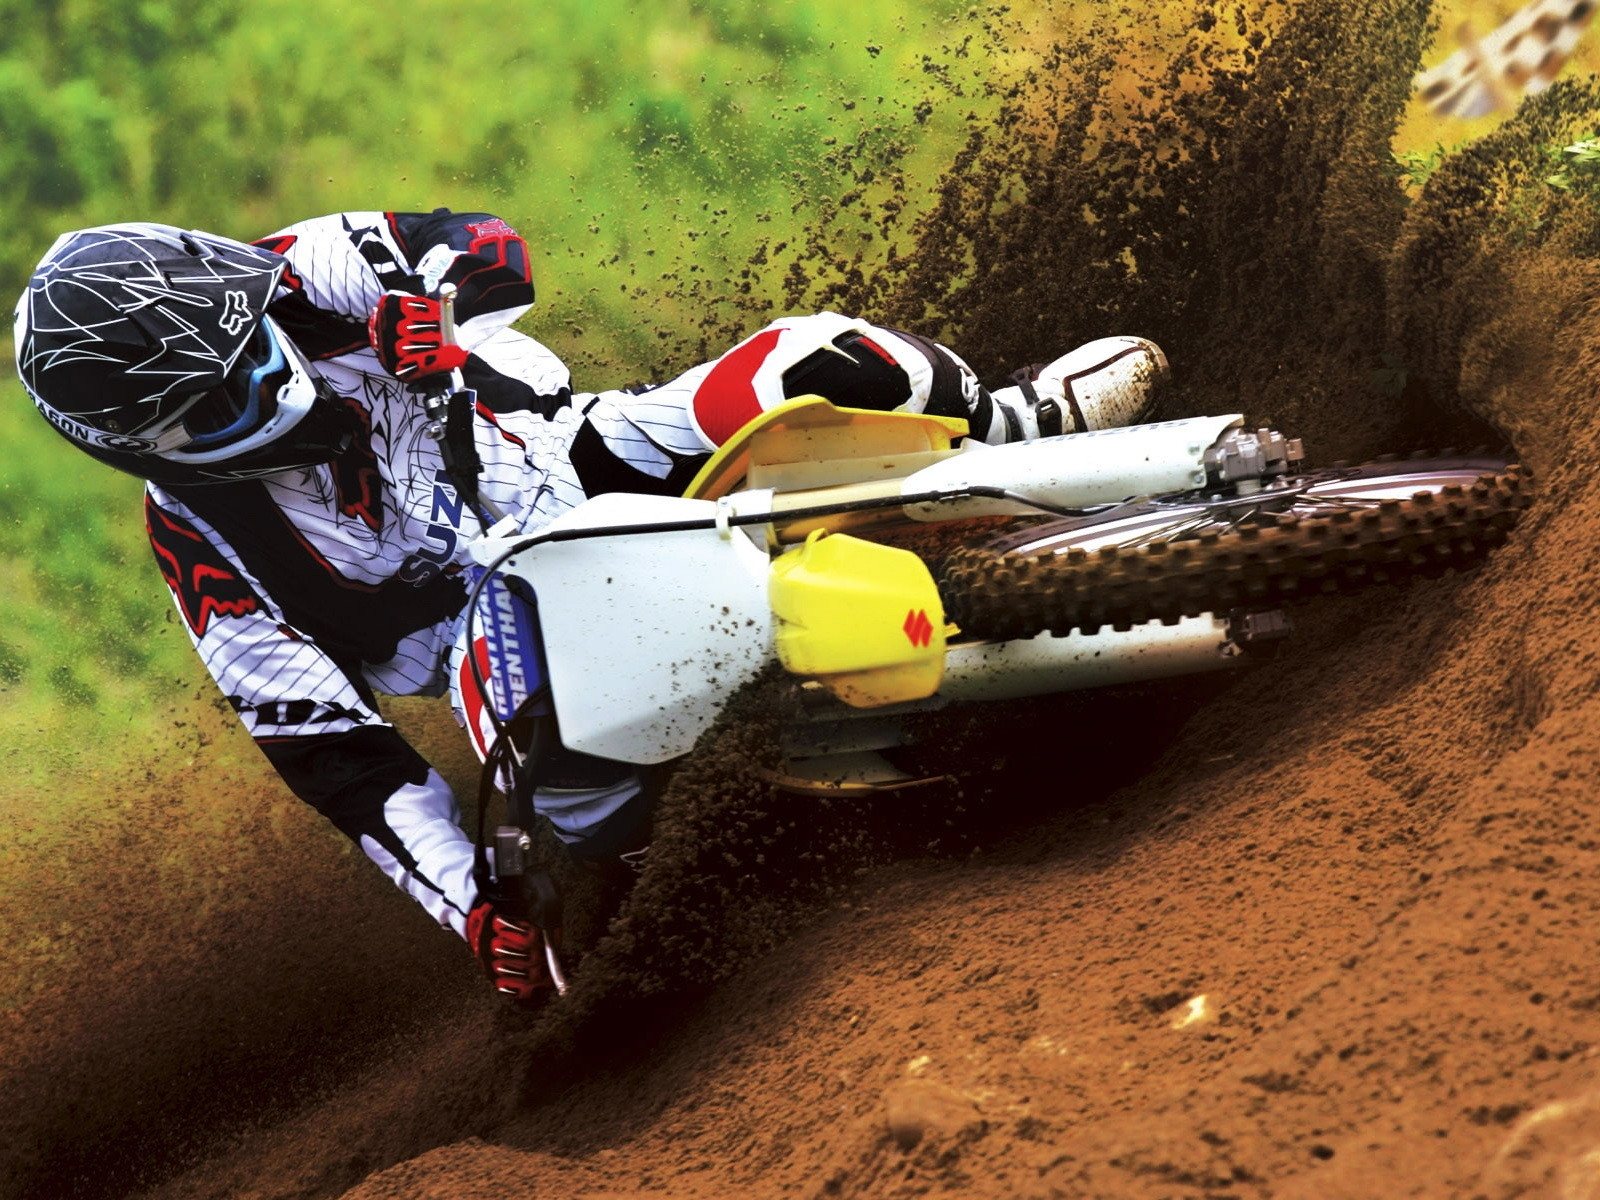 Dirt Bikes Wallpaper Desktop